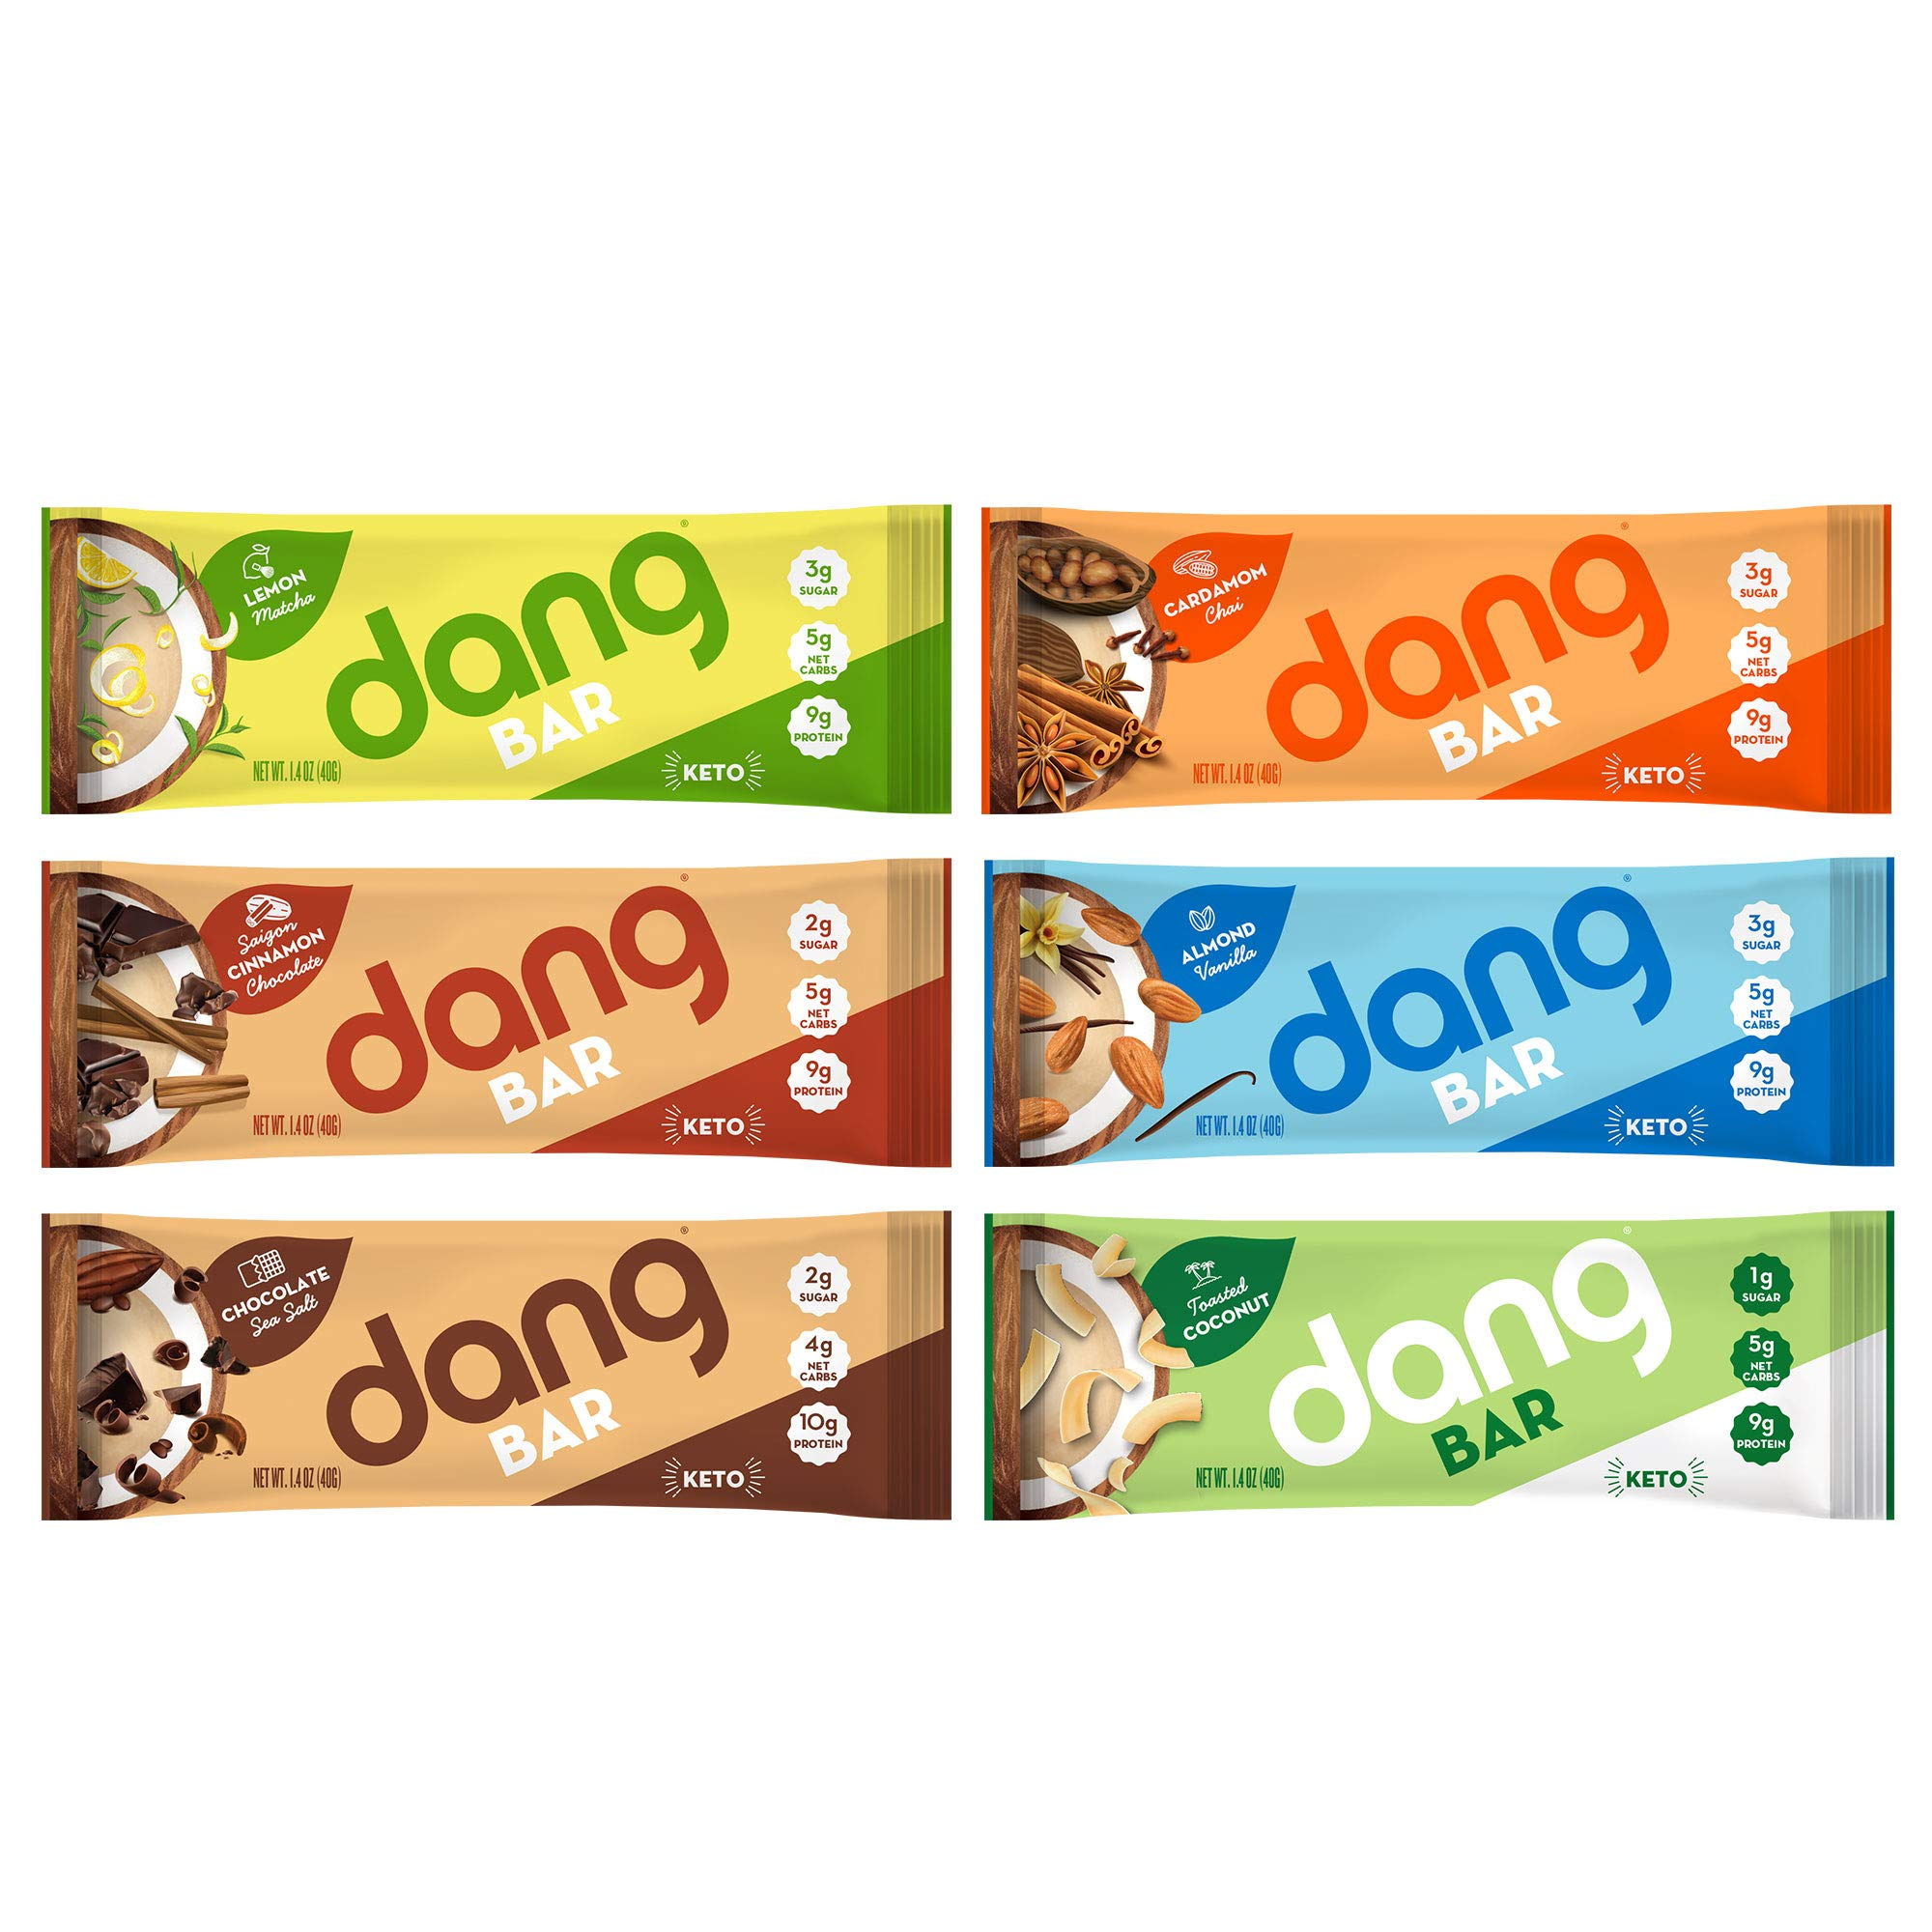 NEW! Dang Bar- KETO CERTIFIED, Low Carb, Plant Based, Gluten Free, Real Food Snack Bar, 1-3g Sugar, 4-5g Net Carbs, No Sugar Alcohols or Artificial Sweeteners, 12 Count (6 Flavor Variety Pack) by DANG (Image #2)